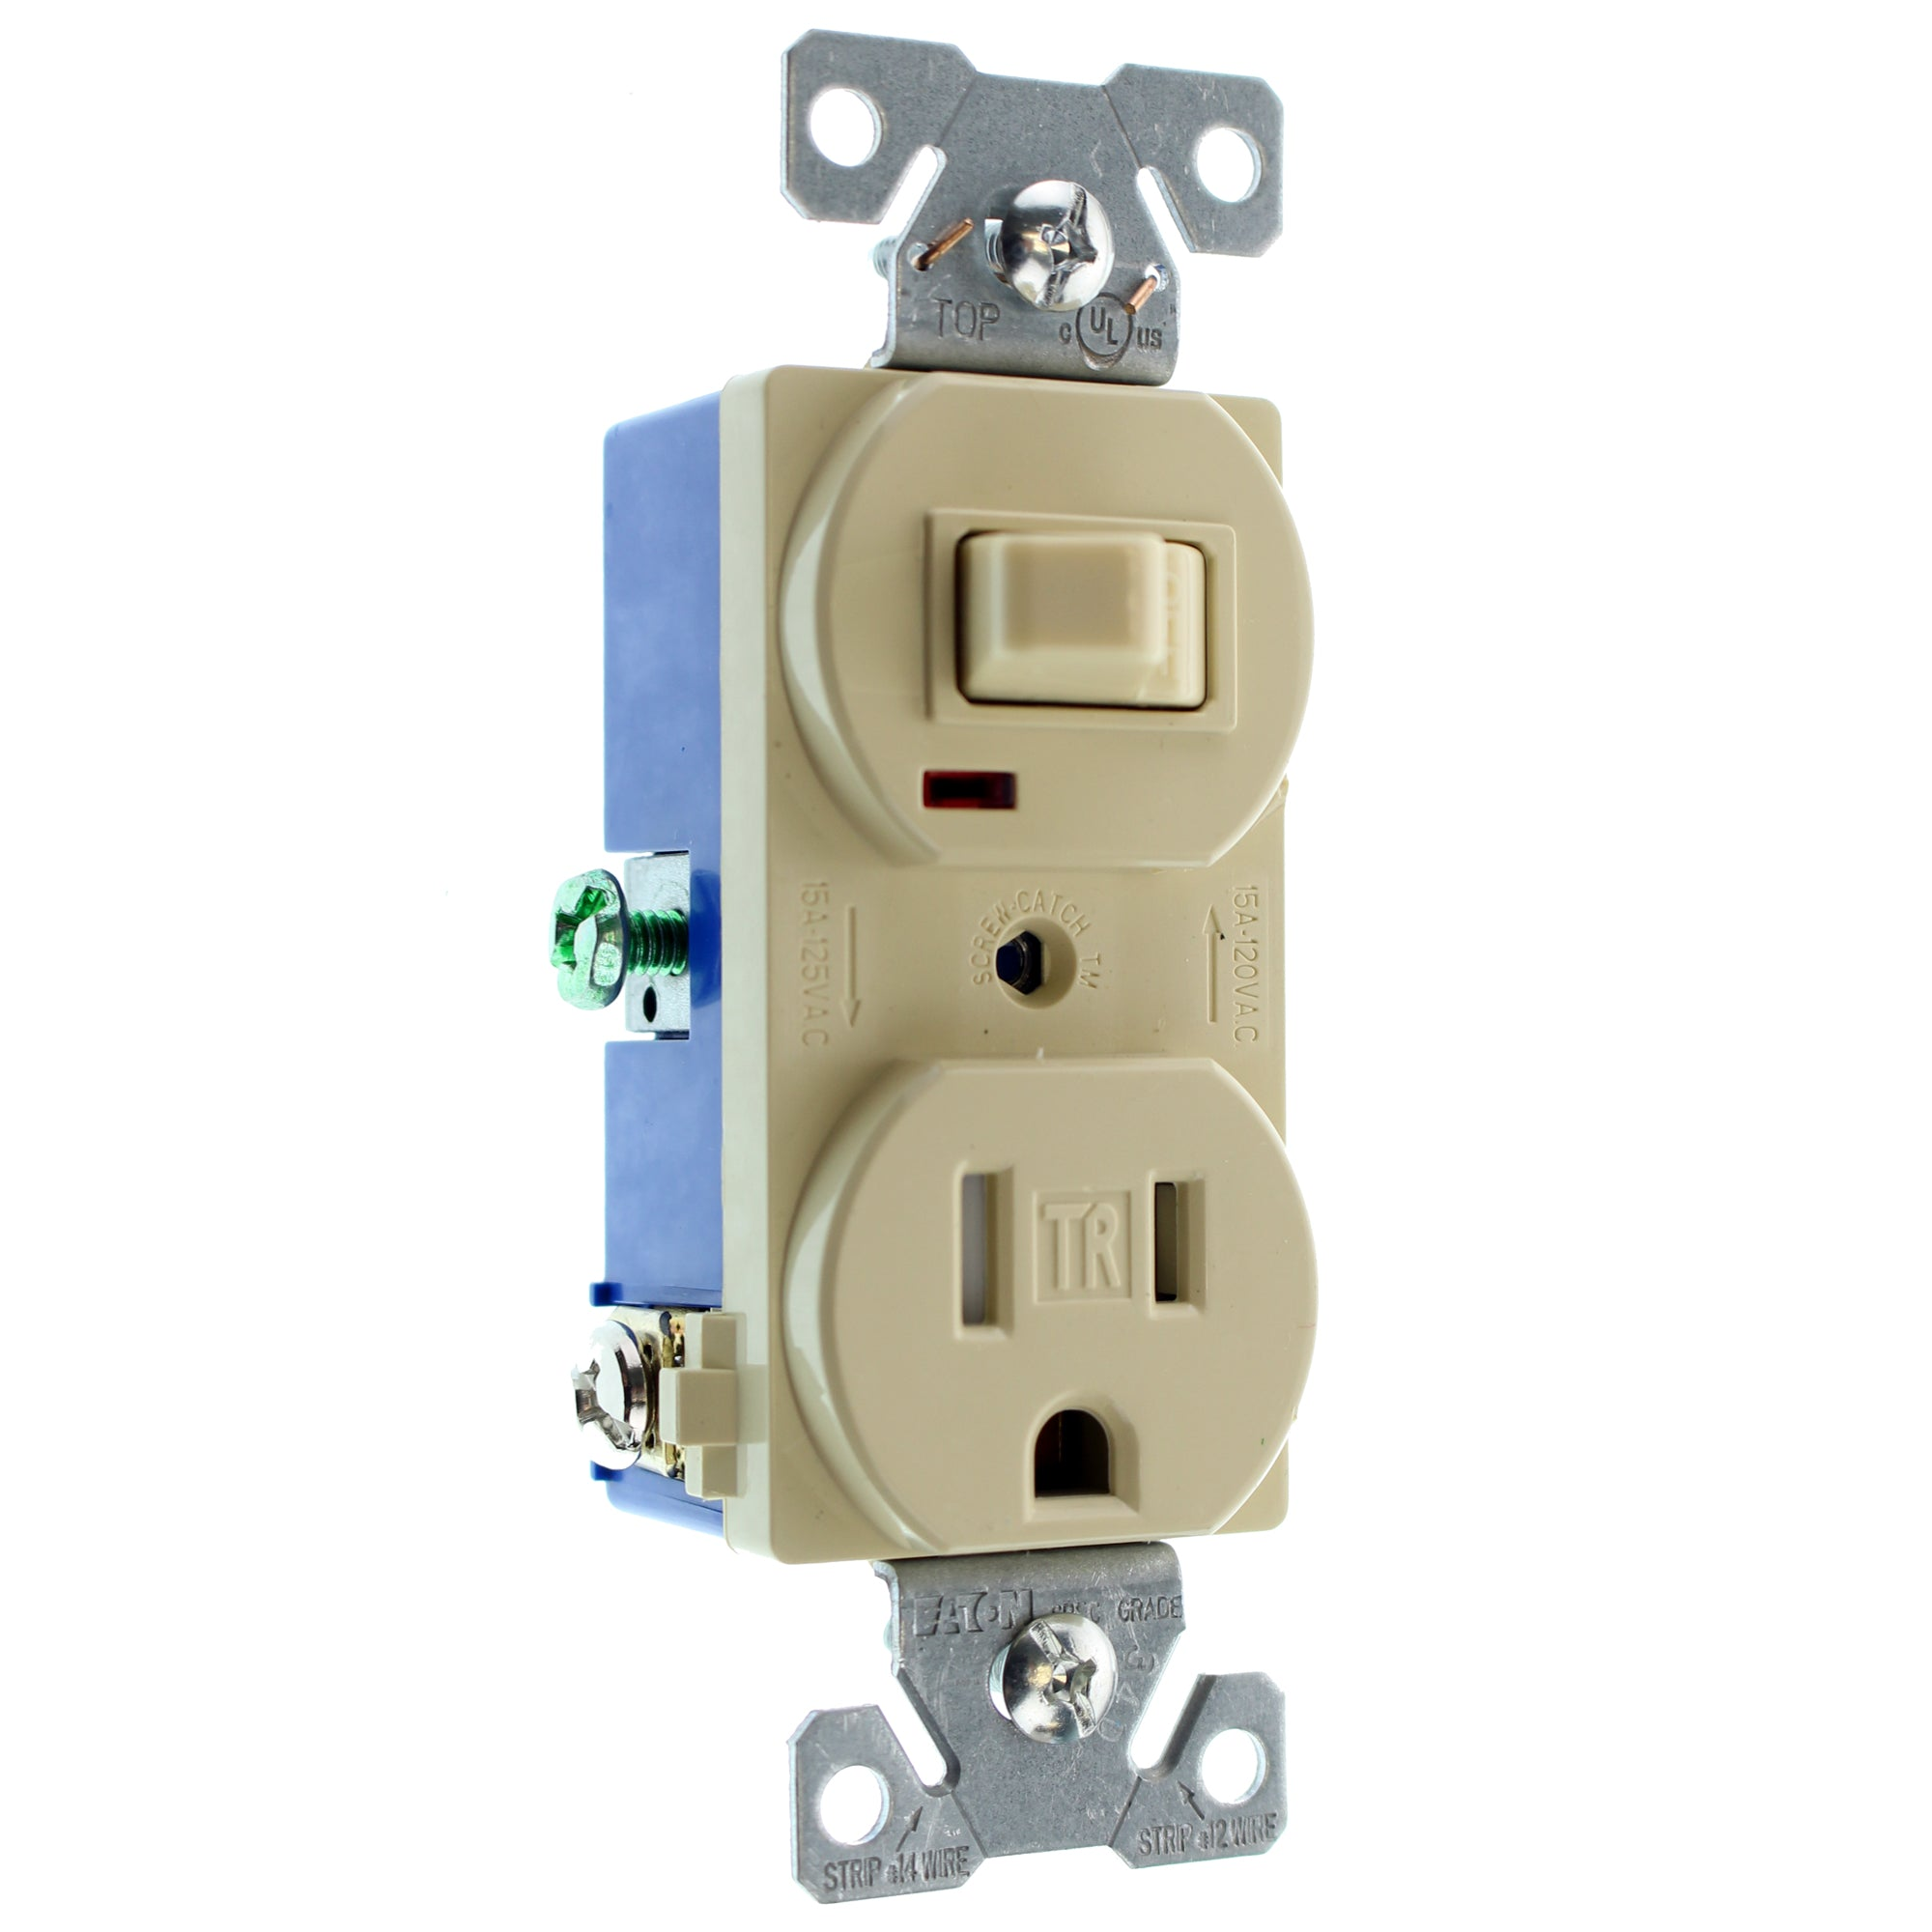 Hubbell Rc108itrz Combo Toggle Switch Receptacle Tr Outlet 15a Wiring 120v Ivory